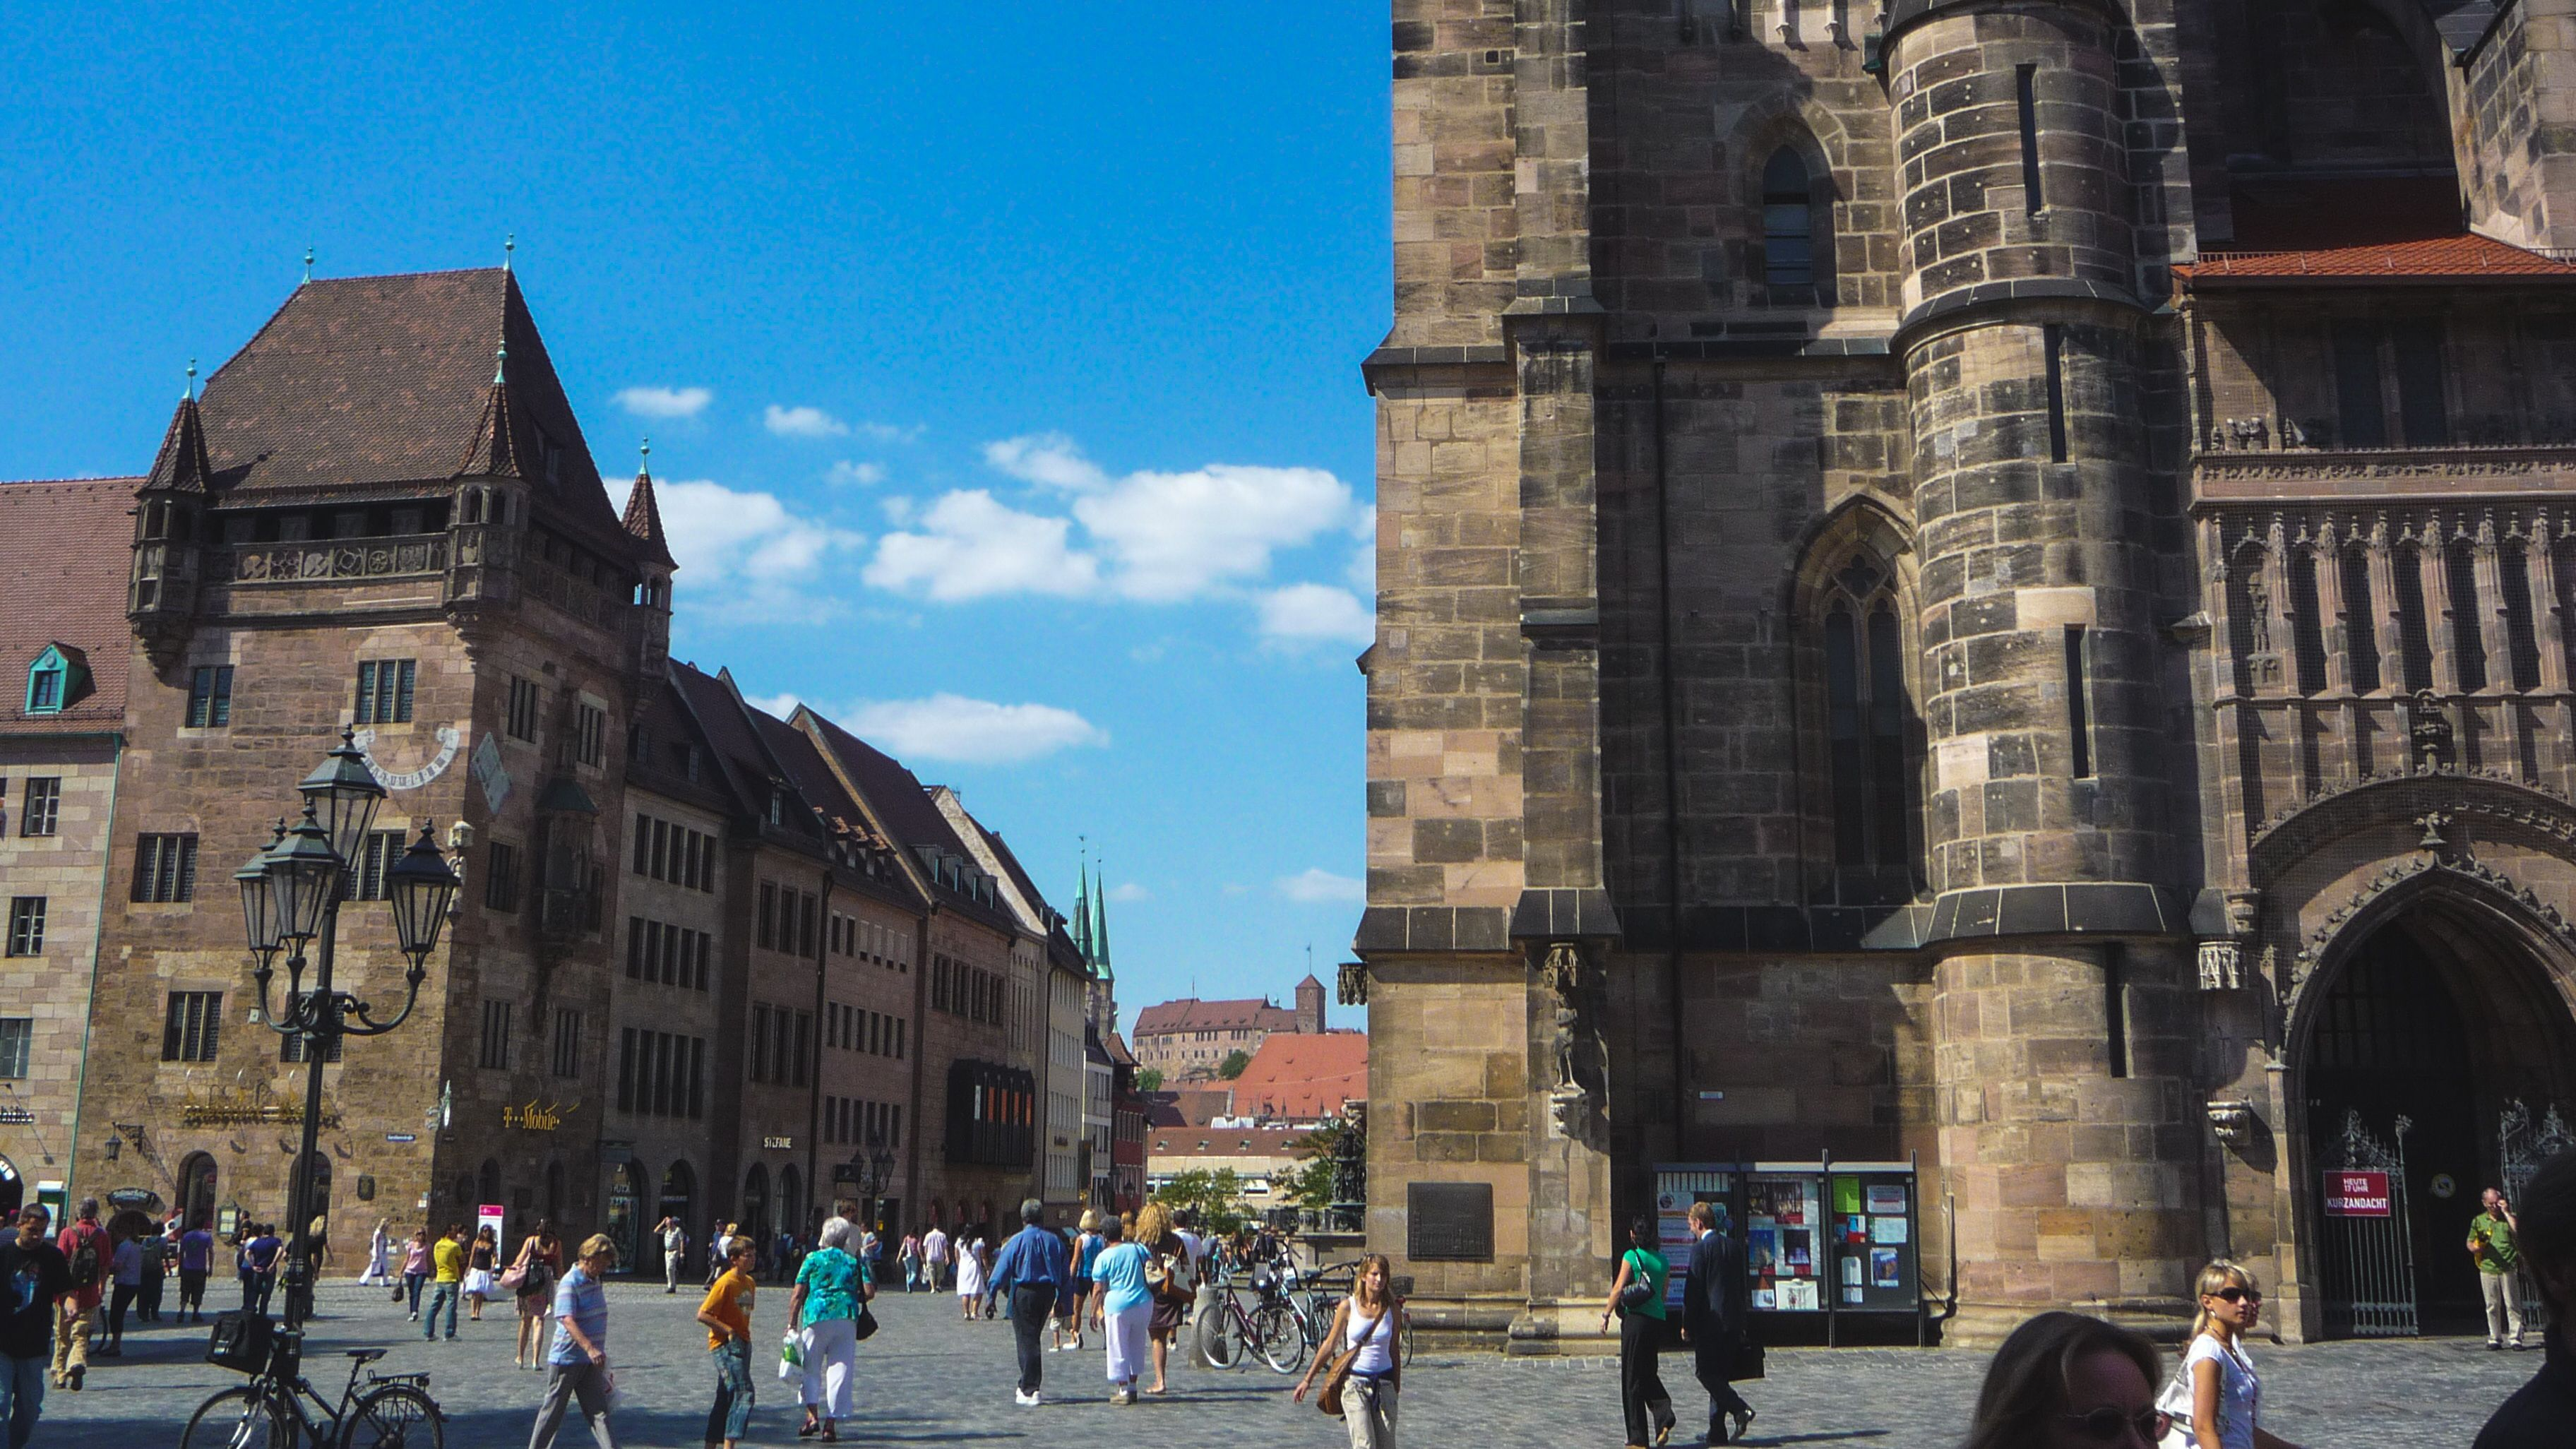 View of local buildings in Nuremberg with intricate detail.